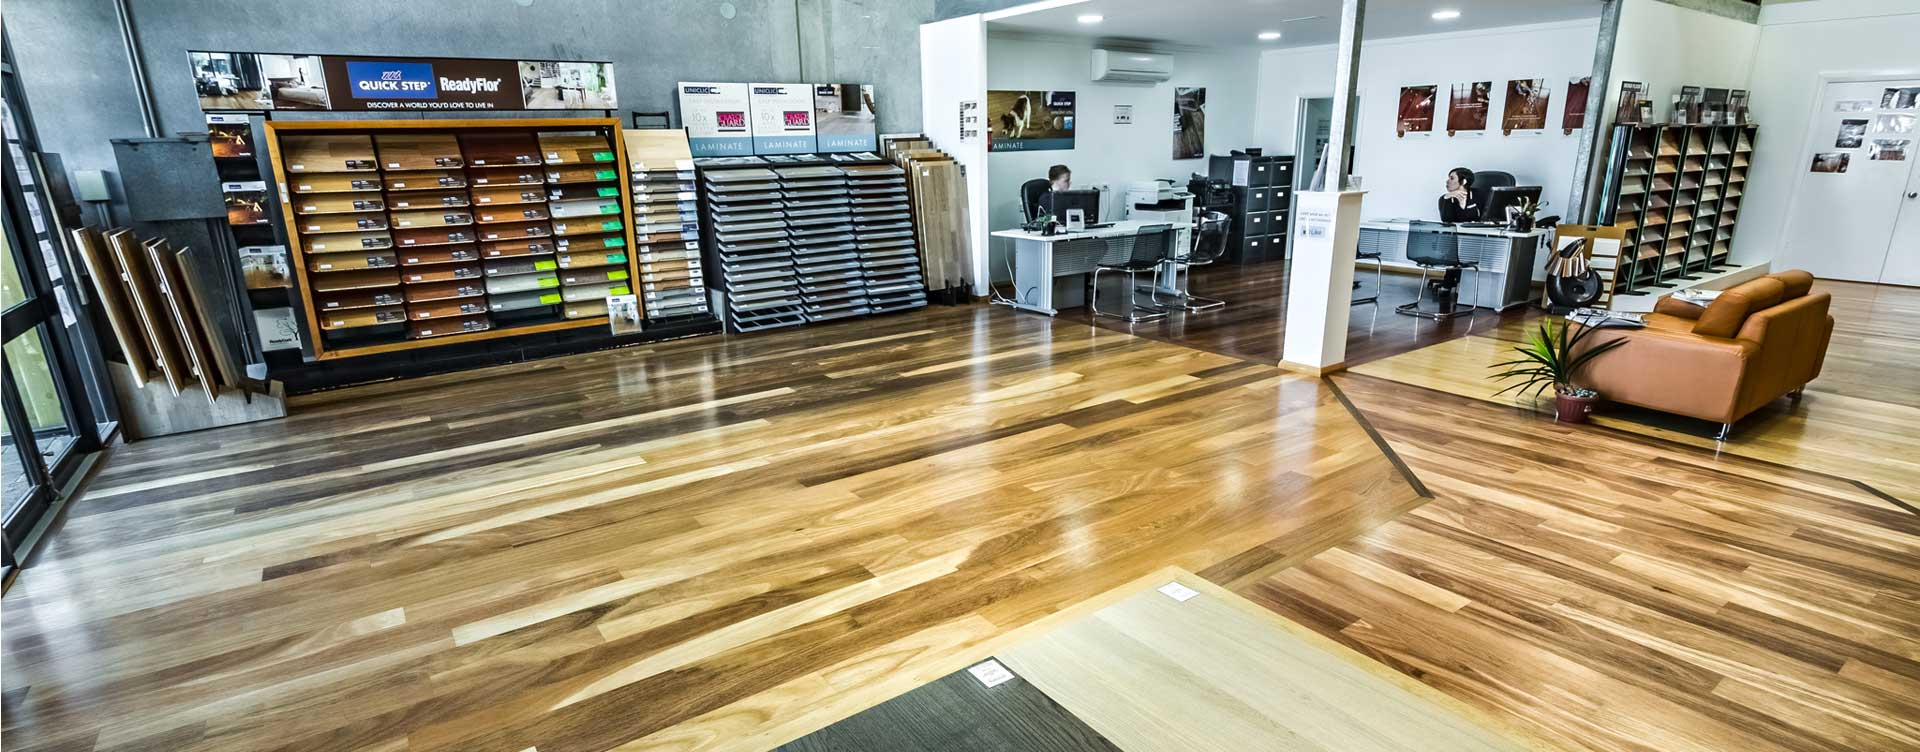 Timber Veneer Perth Timber Flooring Perth Coastal Flooring Wa Quality Wooden